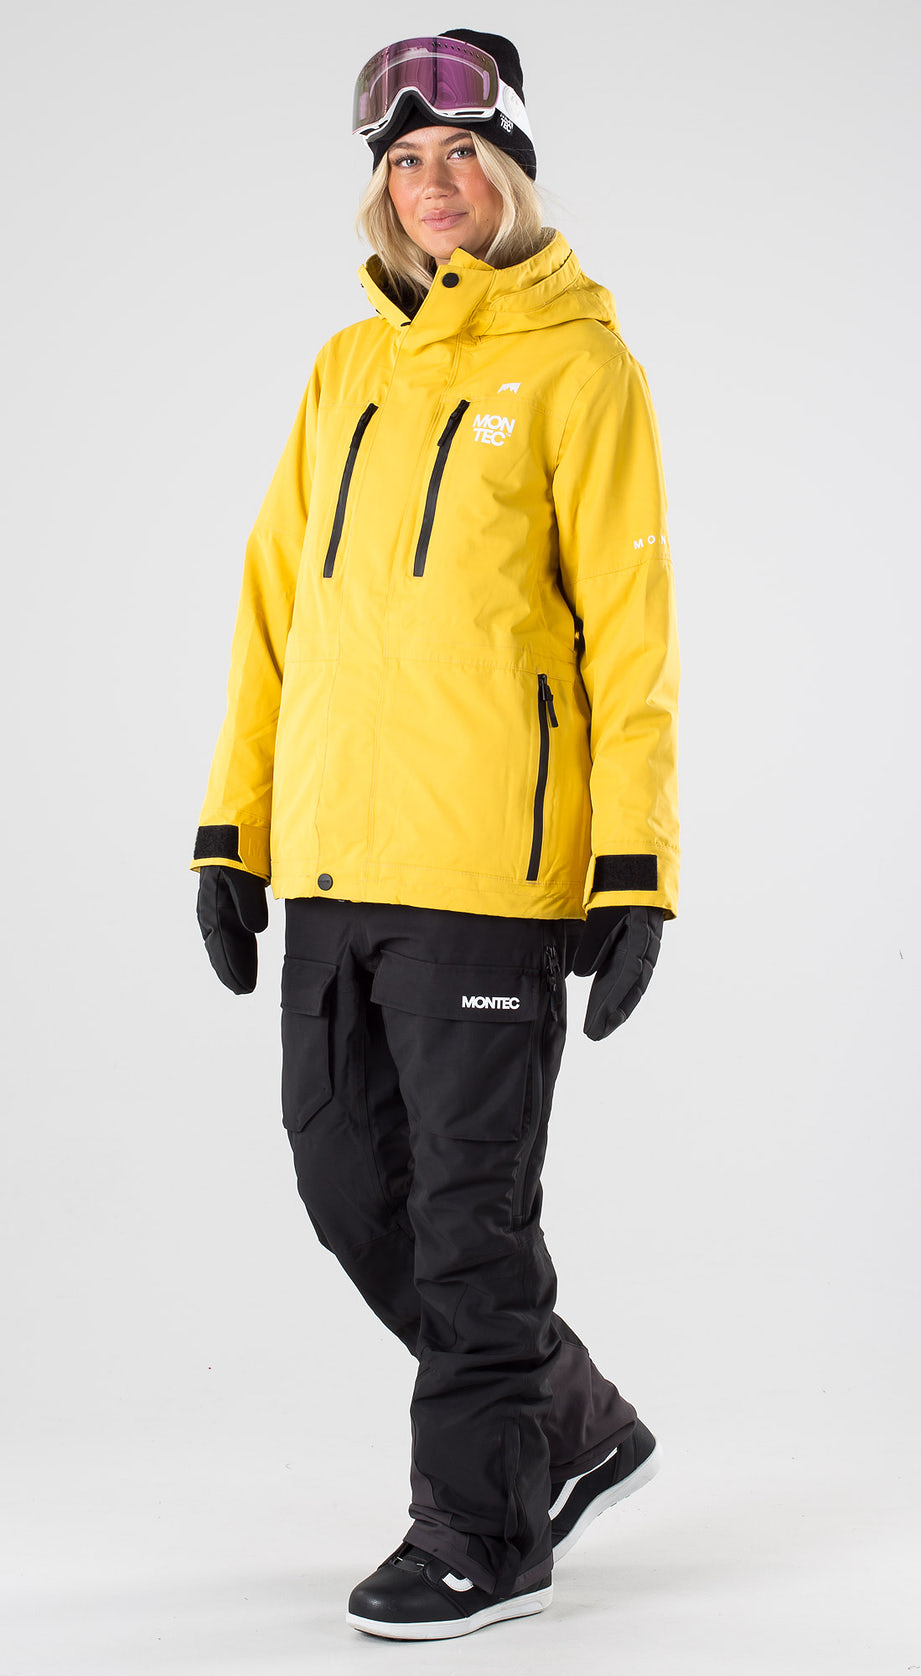 Montec Fawk W Yellow Snowboard clothing Multi